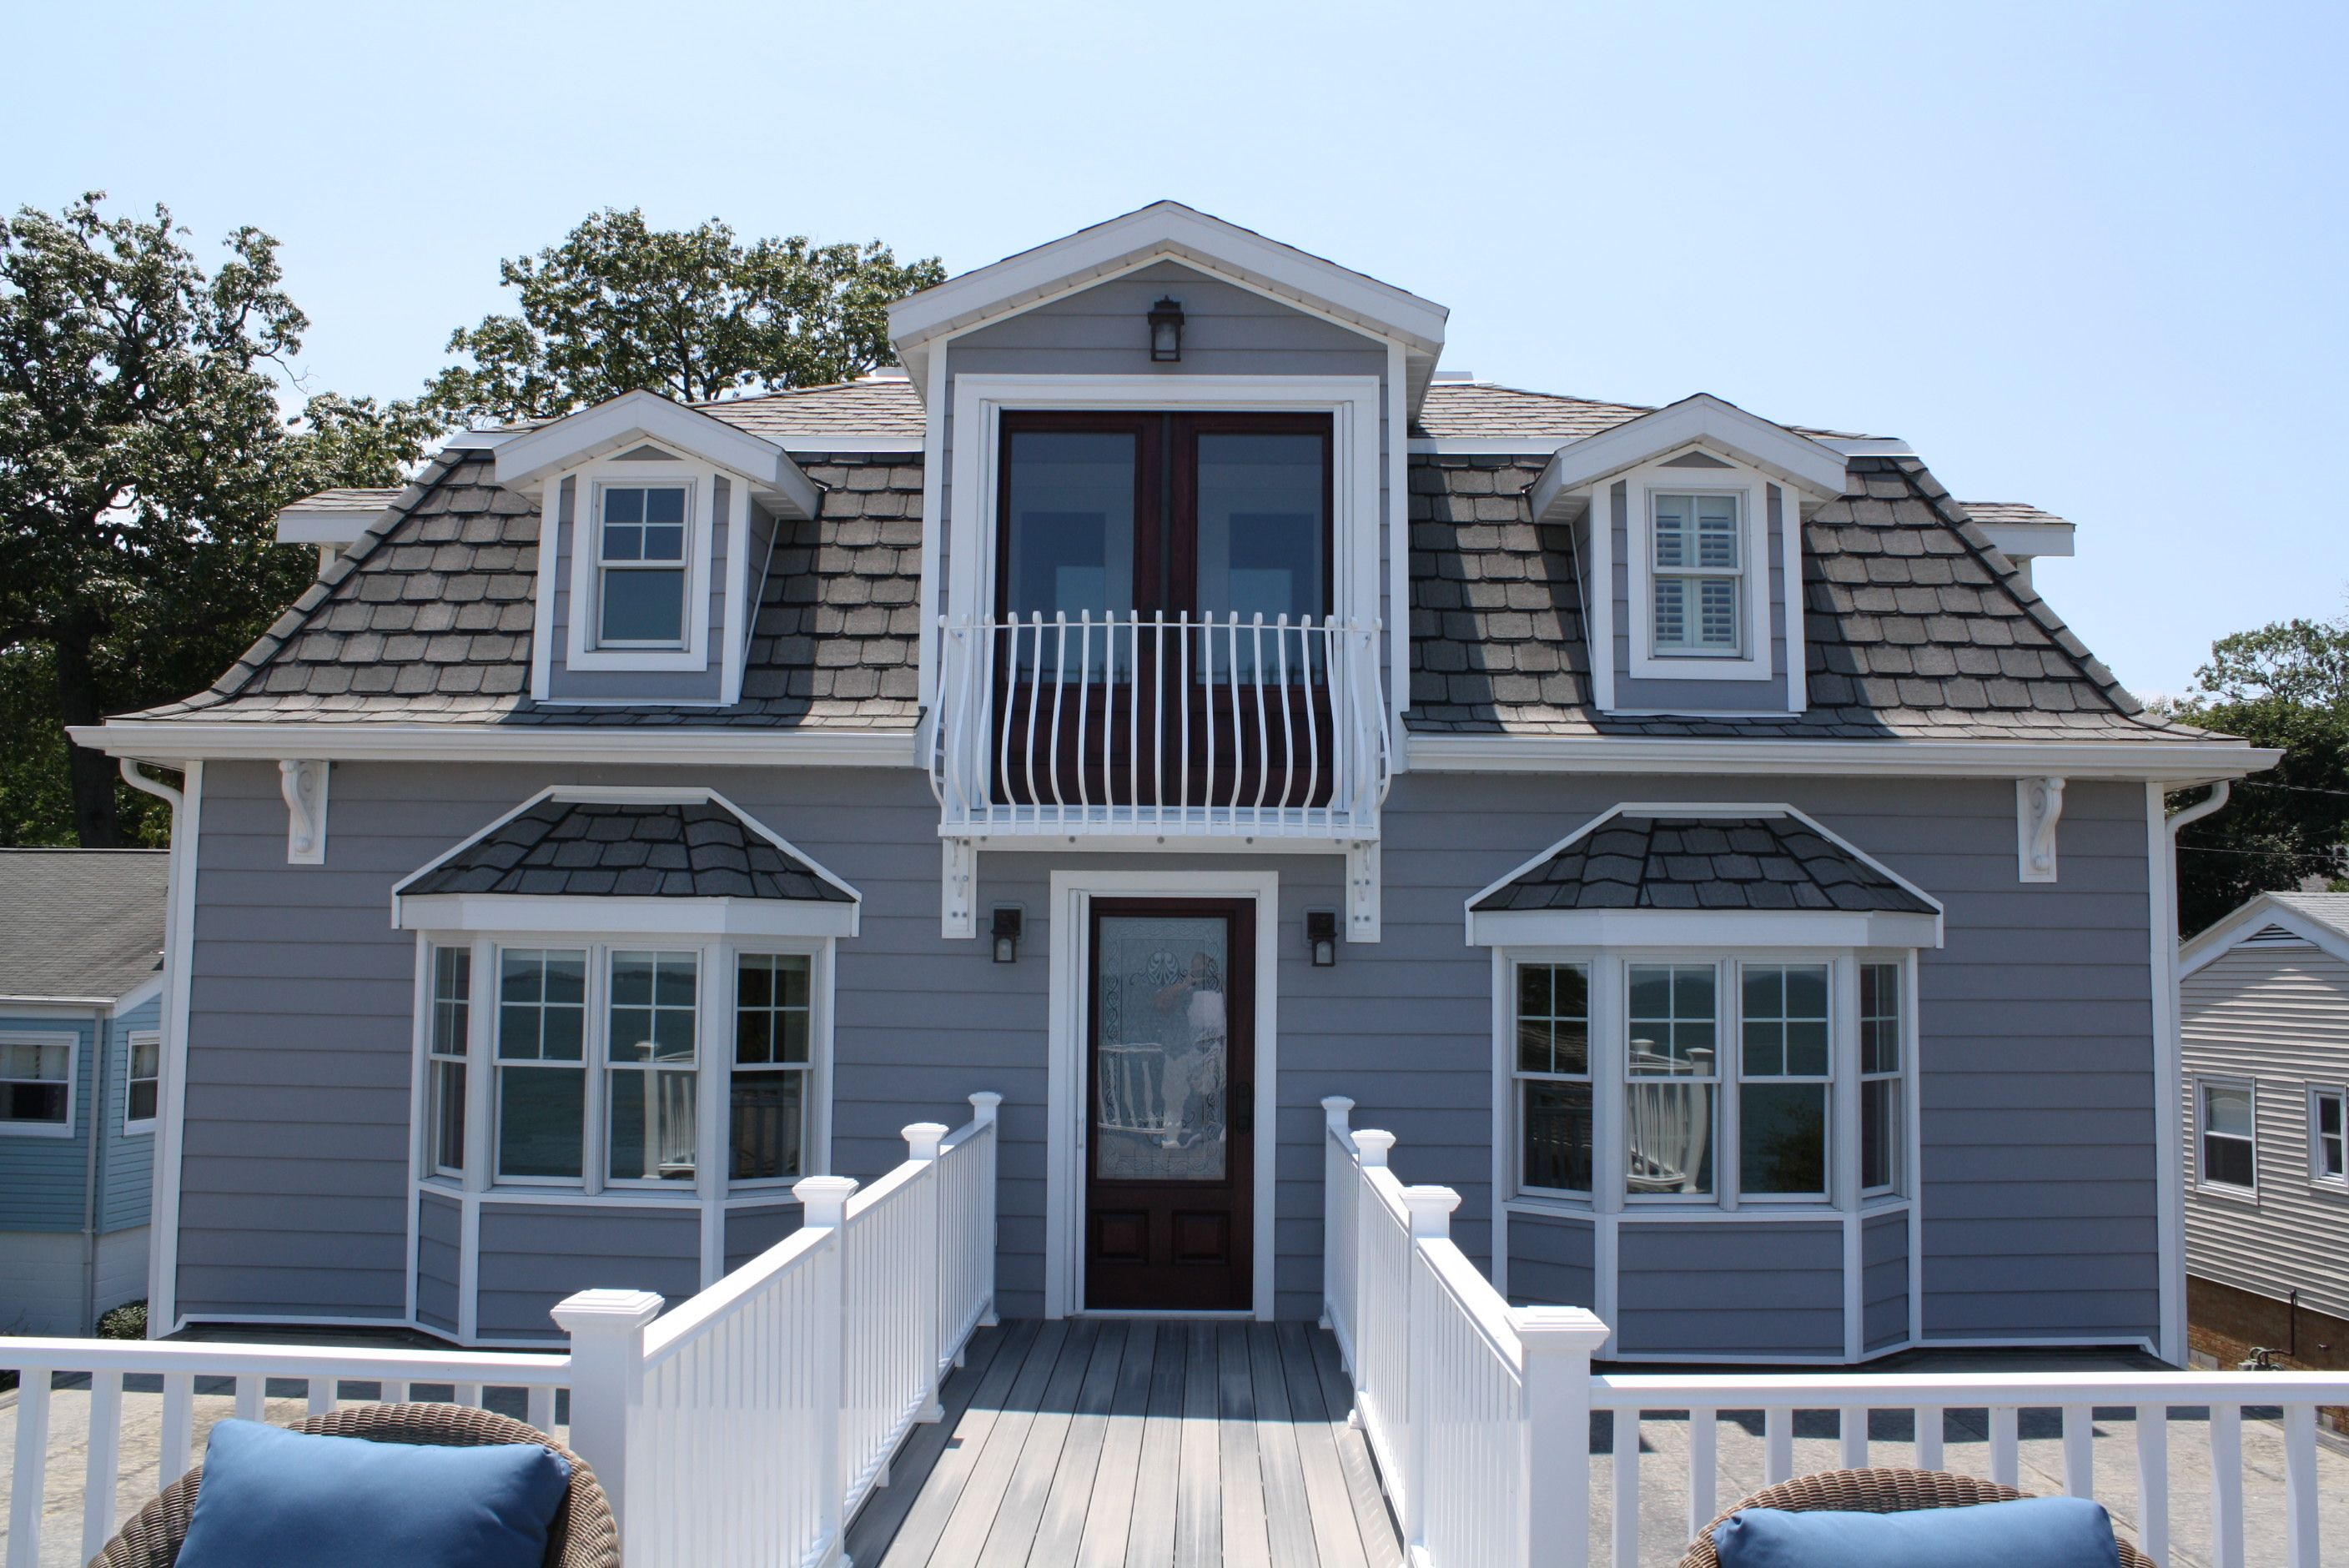 Everlast Polymeric Cladding Can Add Character To Your Home Seaside Grey 7 Profile Is Showcased Here Grey Siding House Styles Home